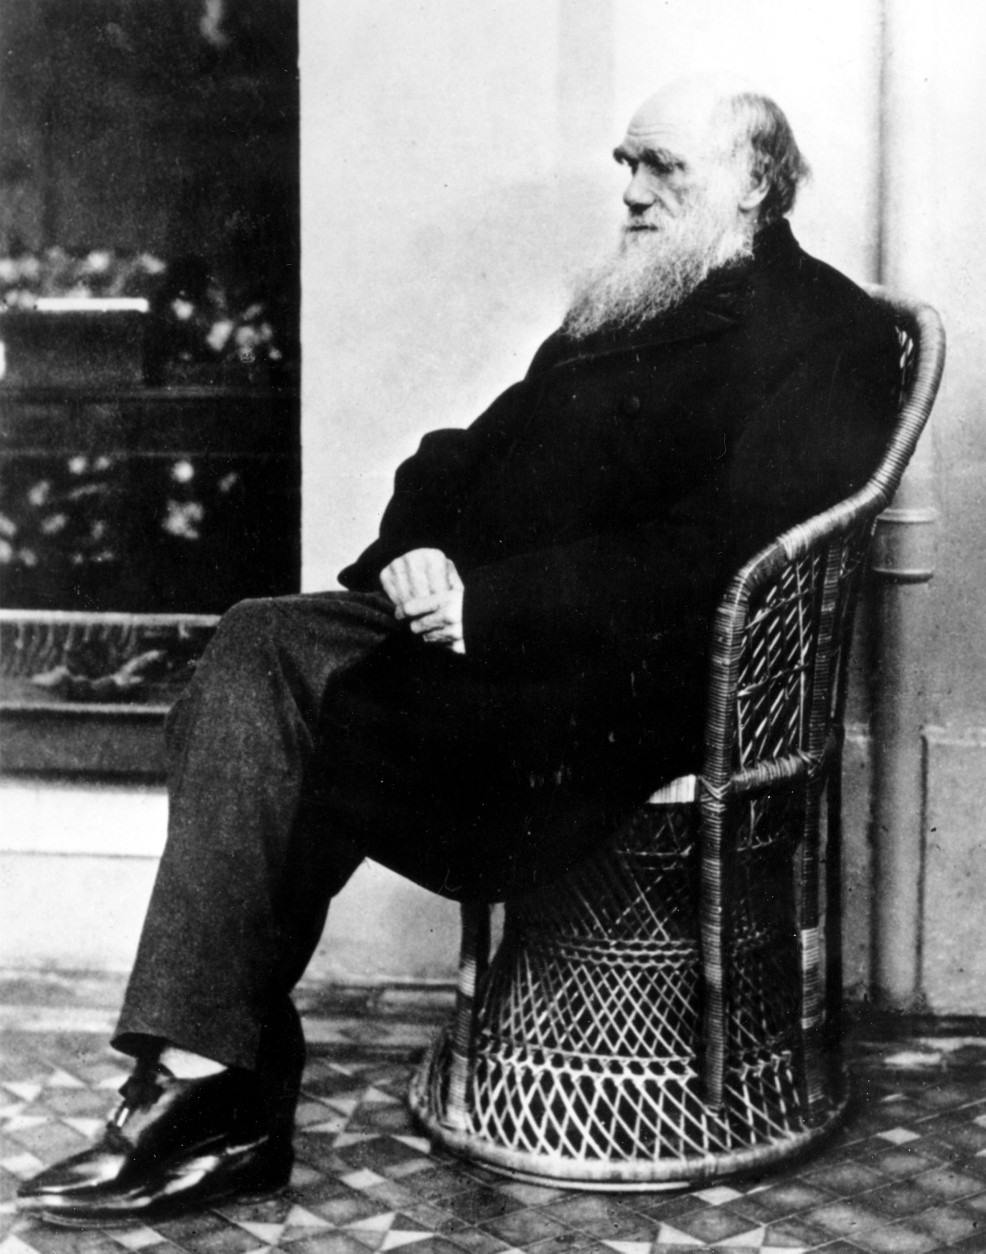 FILE - Charles Darwin poses in a wicker chair in 1875 at an unknown location. The father of evolution's ailments are the topic of an annual conference in Baltimore on Friday, May 6, 2011 that offers modern medical diagnoses for the mysterious illnesses and deaths of historical figures. The very travels that inspired Charles Darwin's theory of evolution and shaped modern biology may have led to one of the illnesses that plagued the British naturalist for decades and ultimately led to his death. (AP Photo, File)